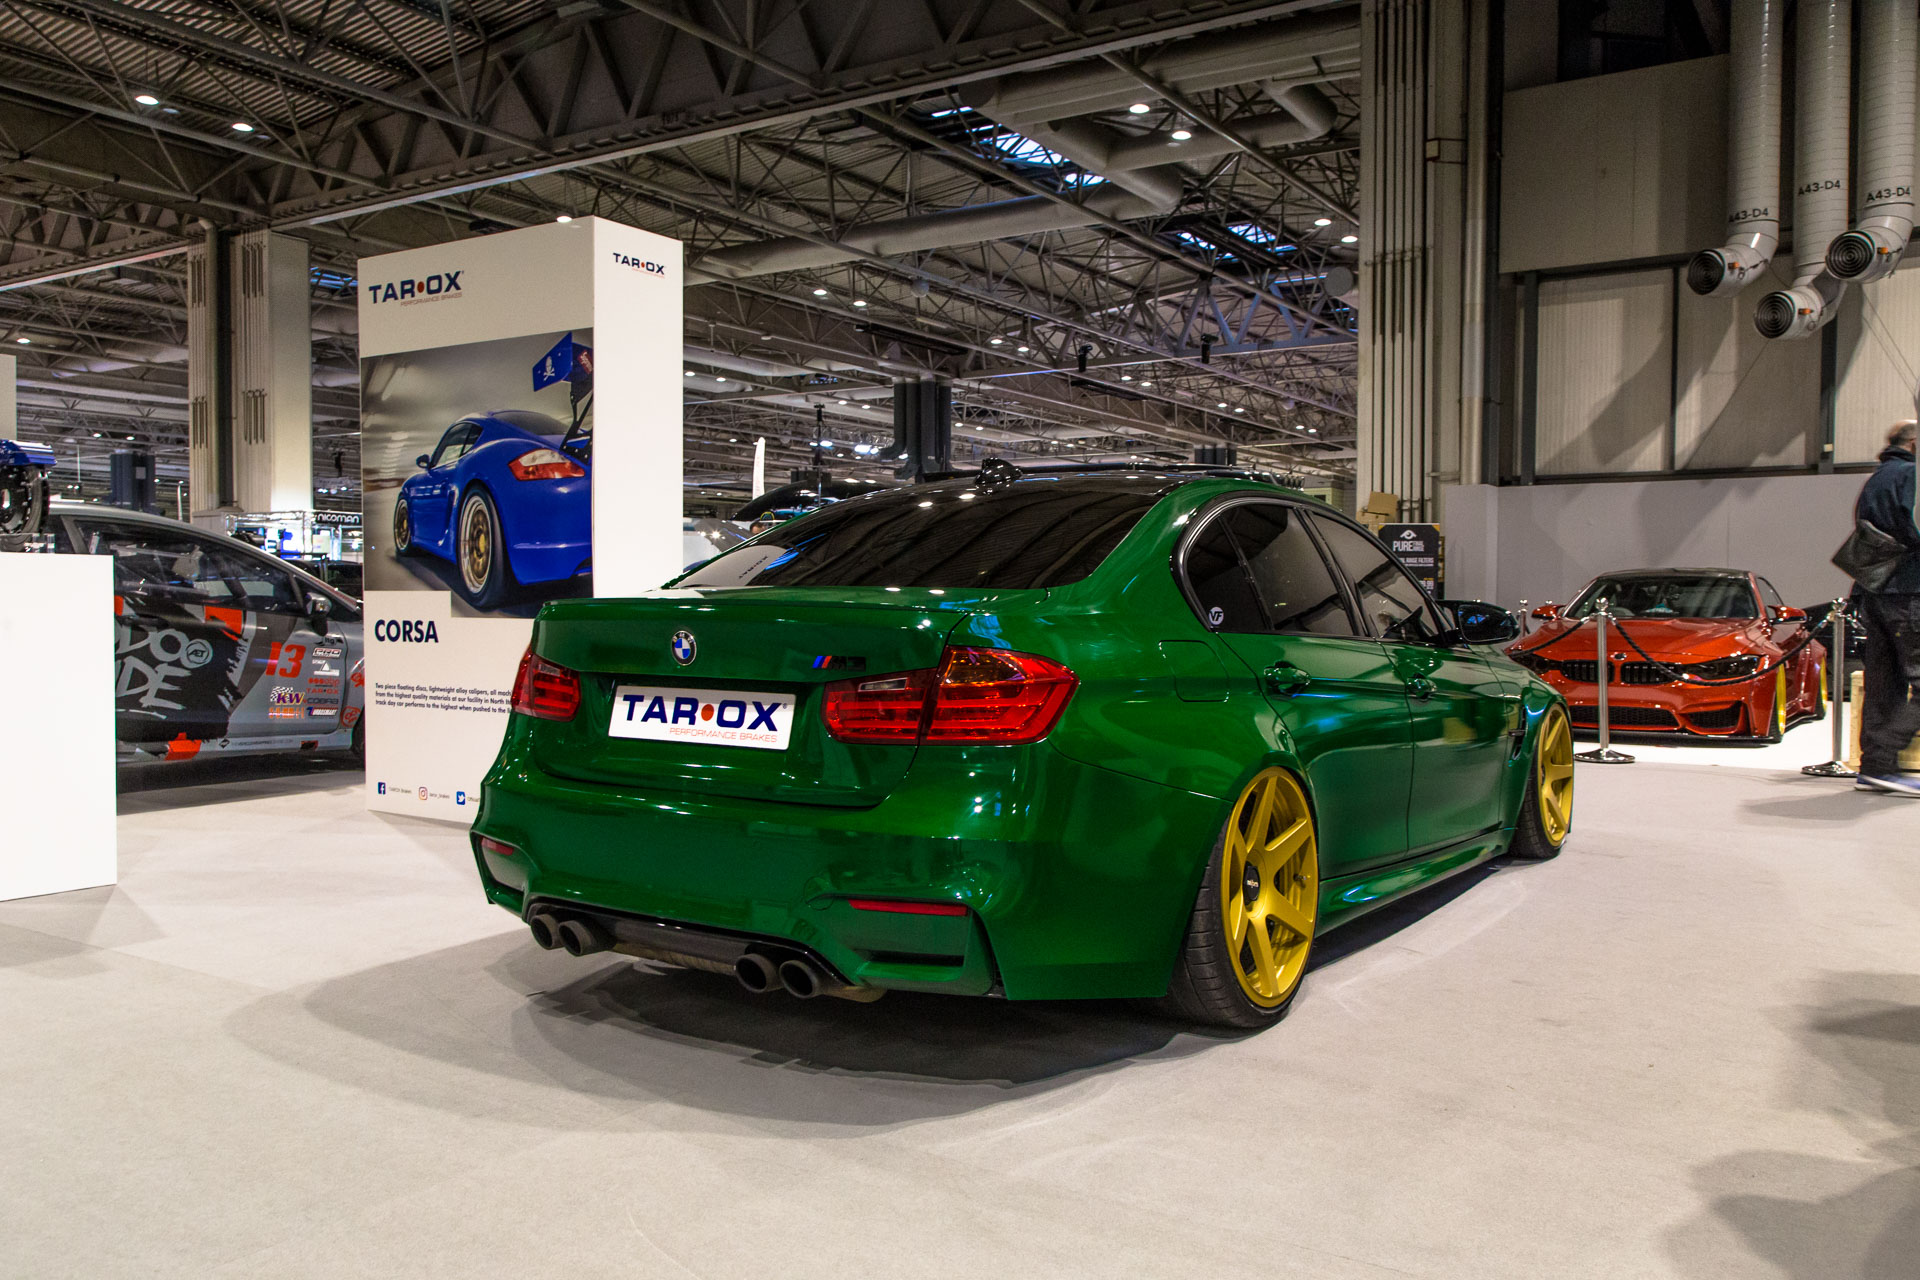 Arrivederci to TAROX long term BMW M4